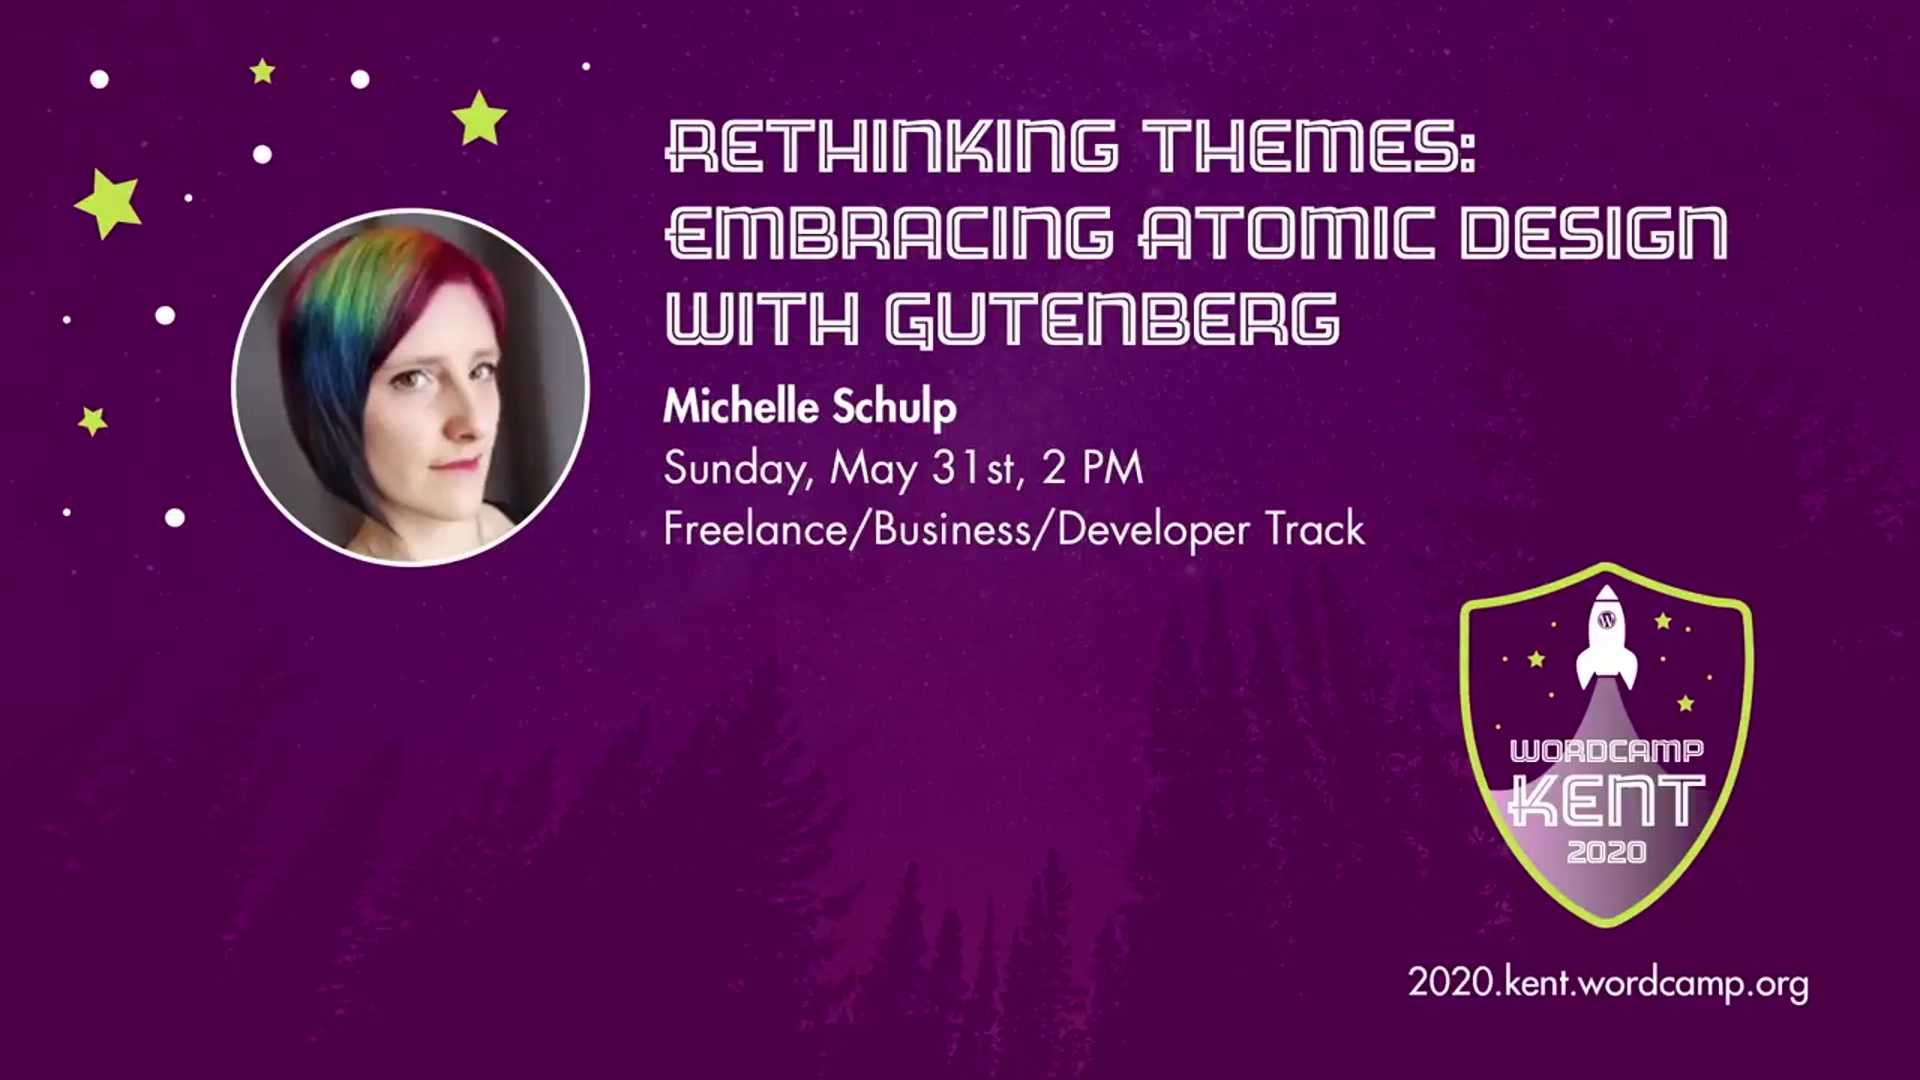 Michelle Schulp: Rethinking Themes -- Embracing Atomic Design With Gutenberg